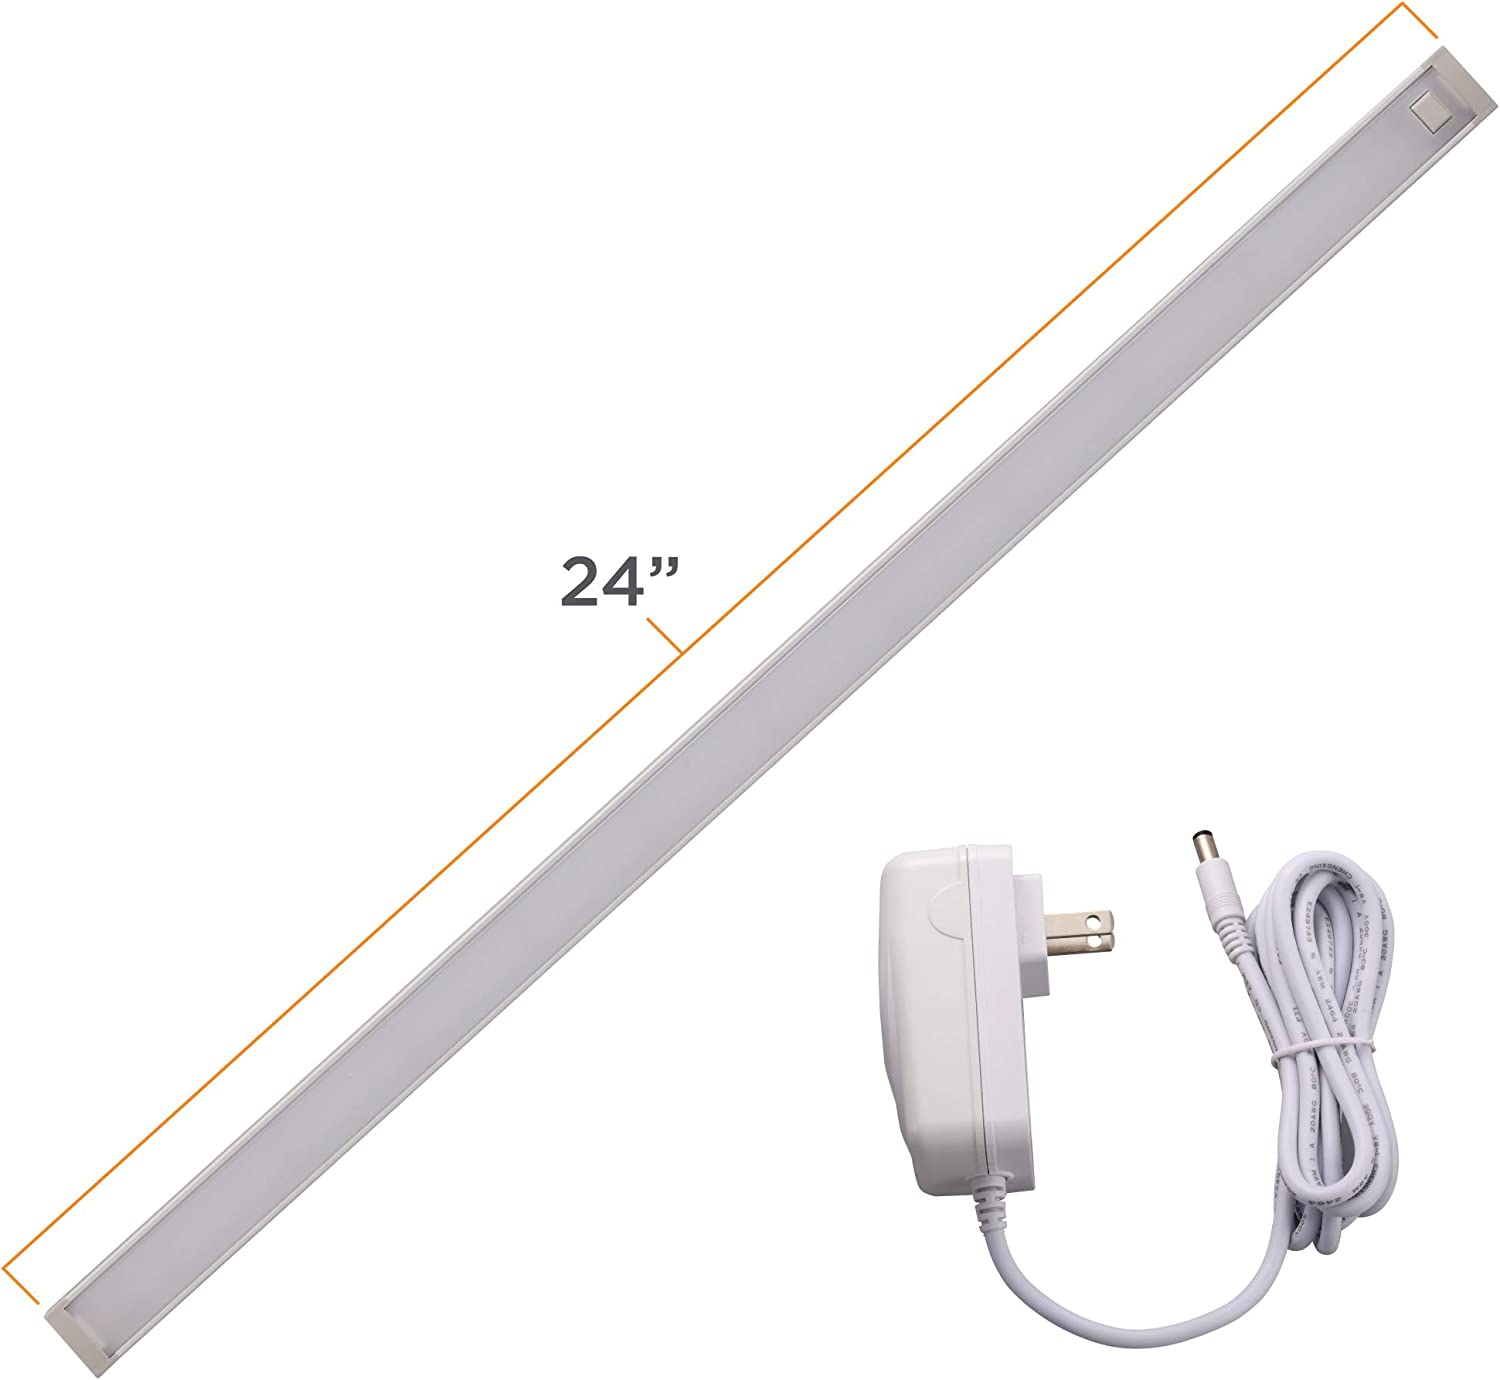 "BLACK+DECKER Cabinet Utility Light, 24"" Bar, Tool-Free Install, Warm White (LEDUC24-1WK)"